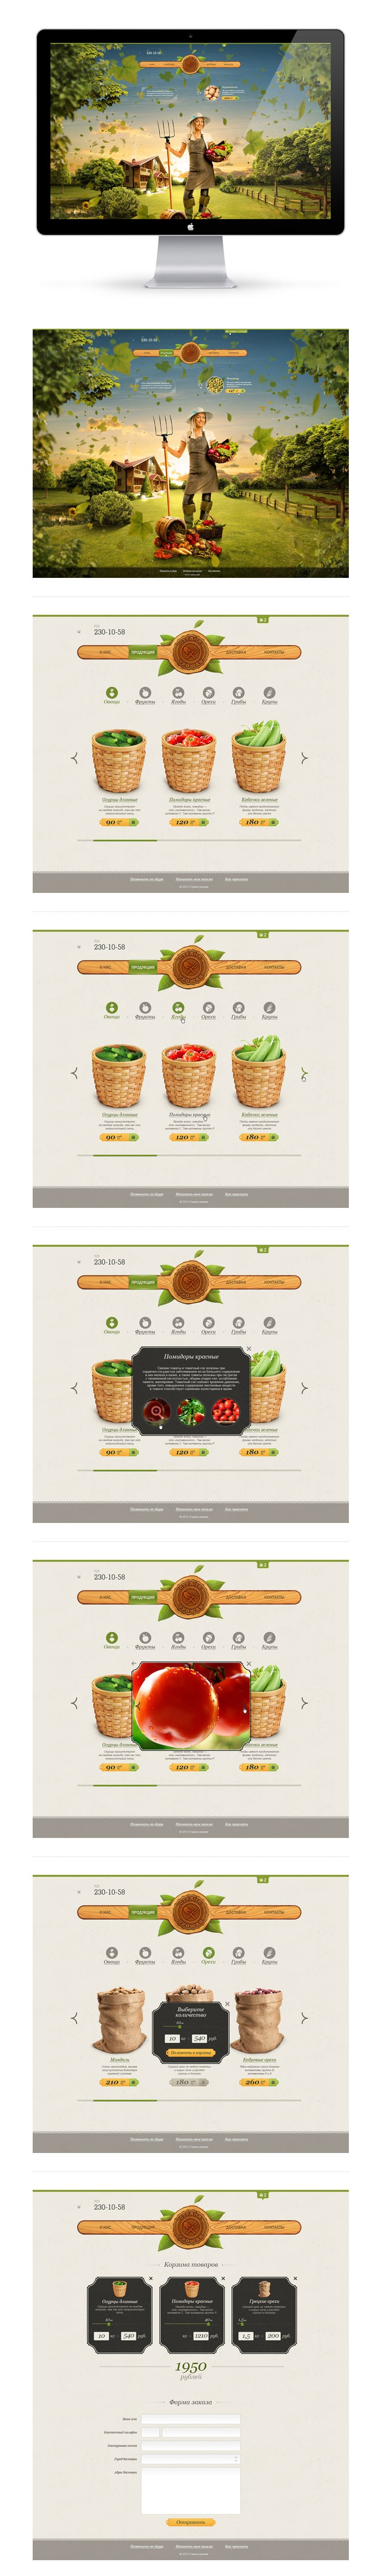 Country of harvest by Biff Tenon, via Behance| #webdesign #it #web #design #layout #userinterface #website #webdesign <<< repinned by an #advertising #agency from #Hamburg / #Germany - www.BlickeDeeler.de